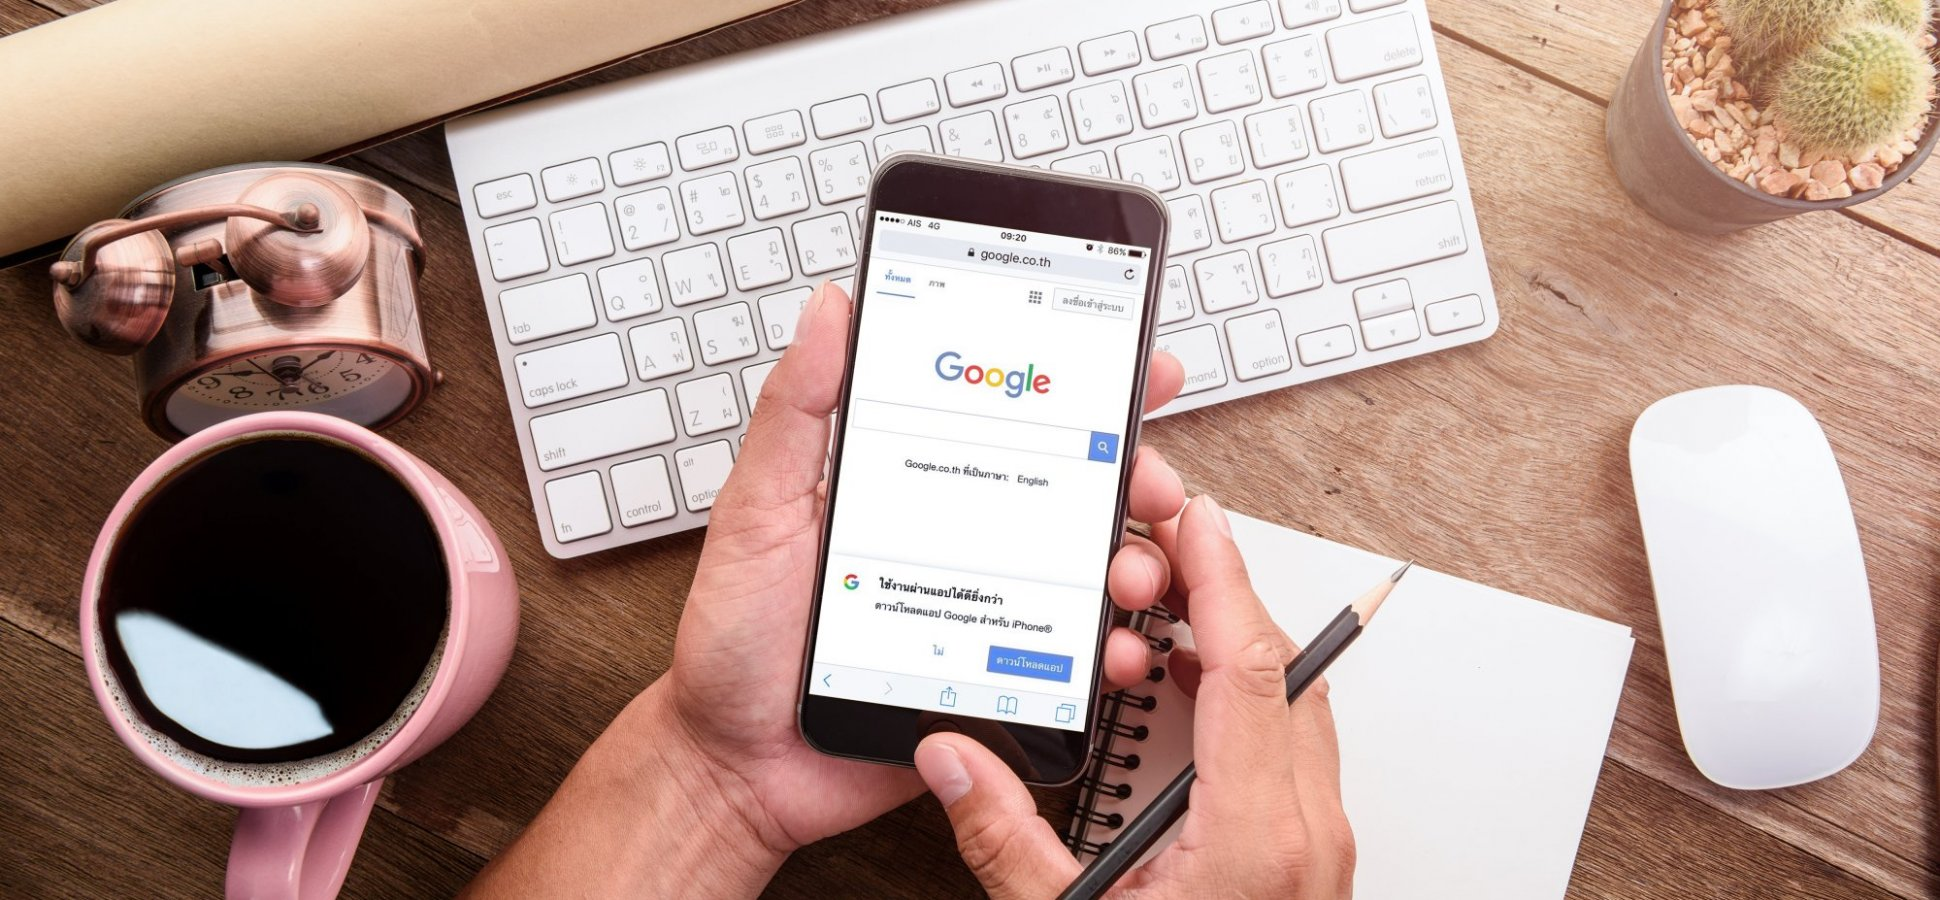 Google Adds Support for Close Variants of Keywords that Have the Same Meaning